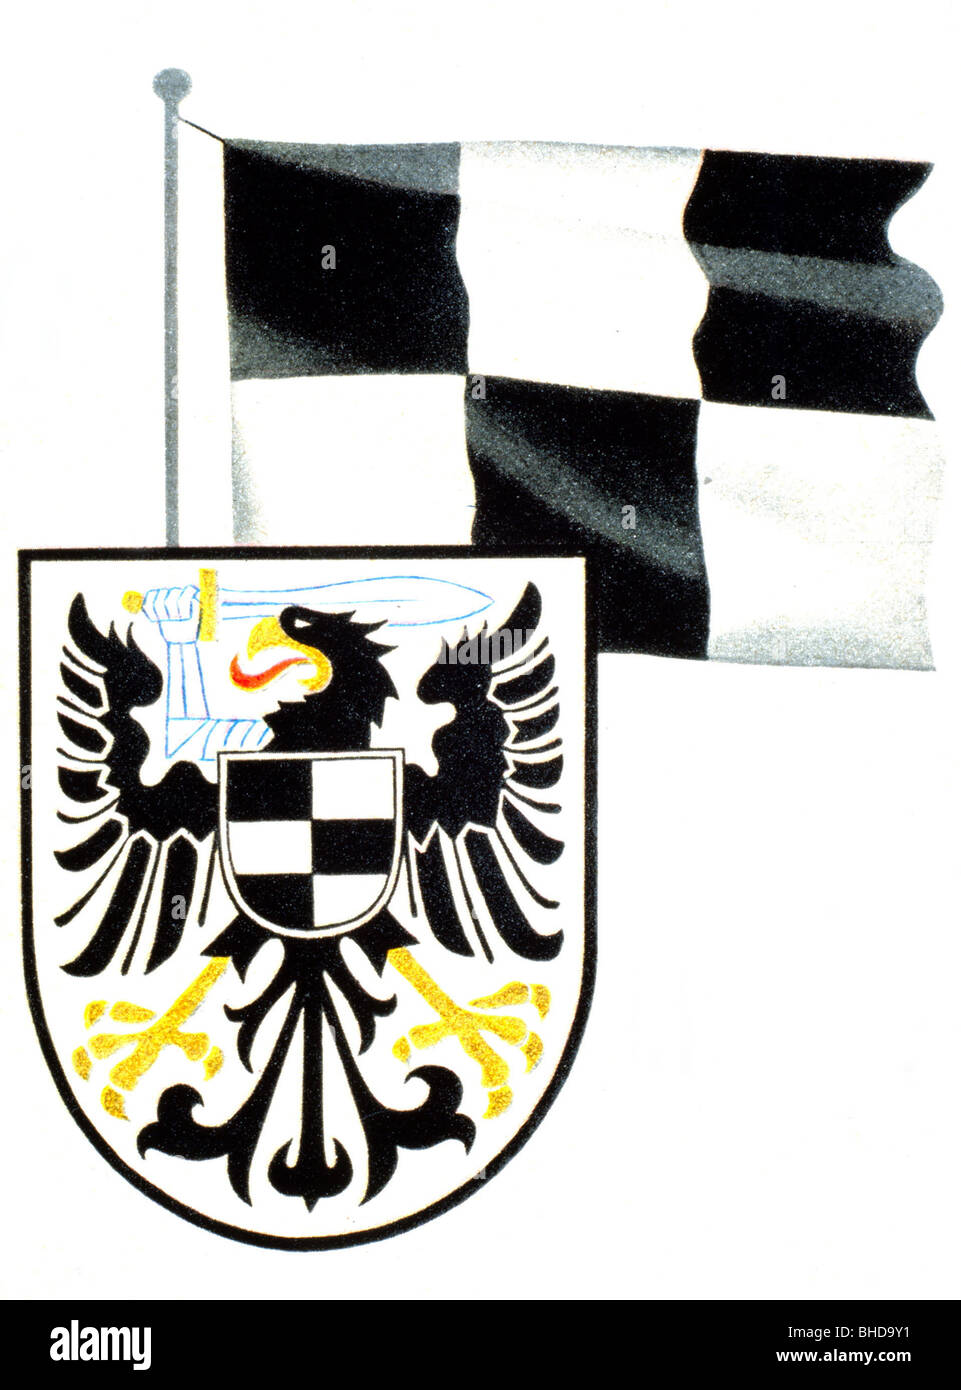 heraldry, coat of arms, Germany, Prussia, border province of Posen-West Prussia 1922 - 1945, flag and coat of arms, - Stock Image